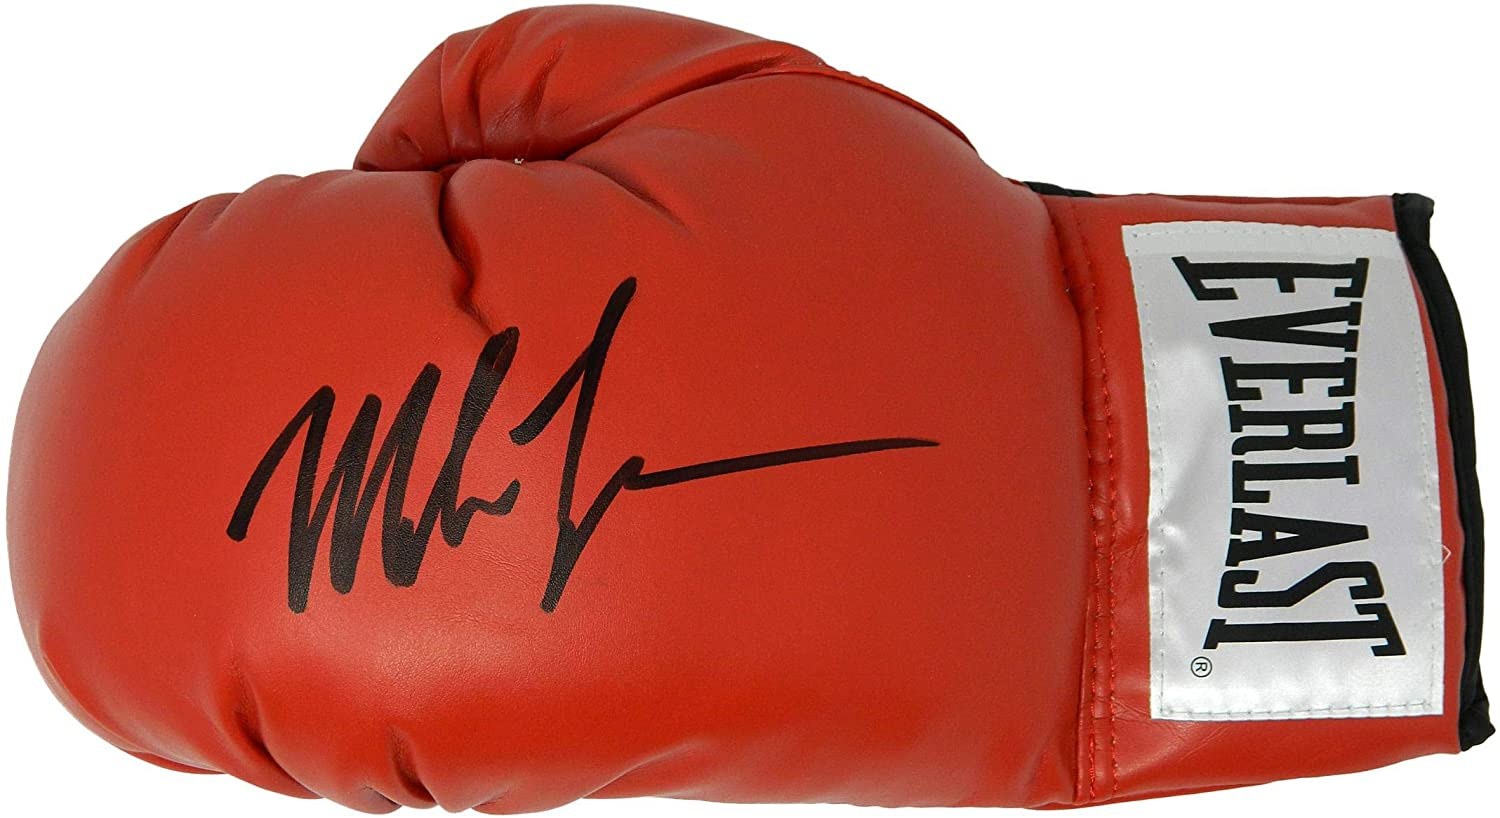 Mike Tyson Signed Everlast Red Full Size Boxing Glove - Autographed Boxing Gloves